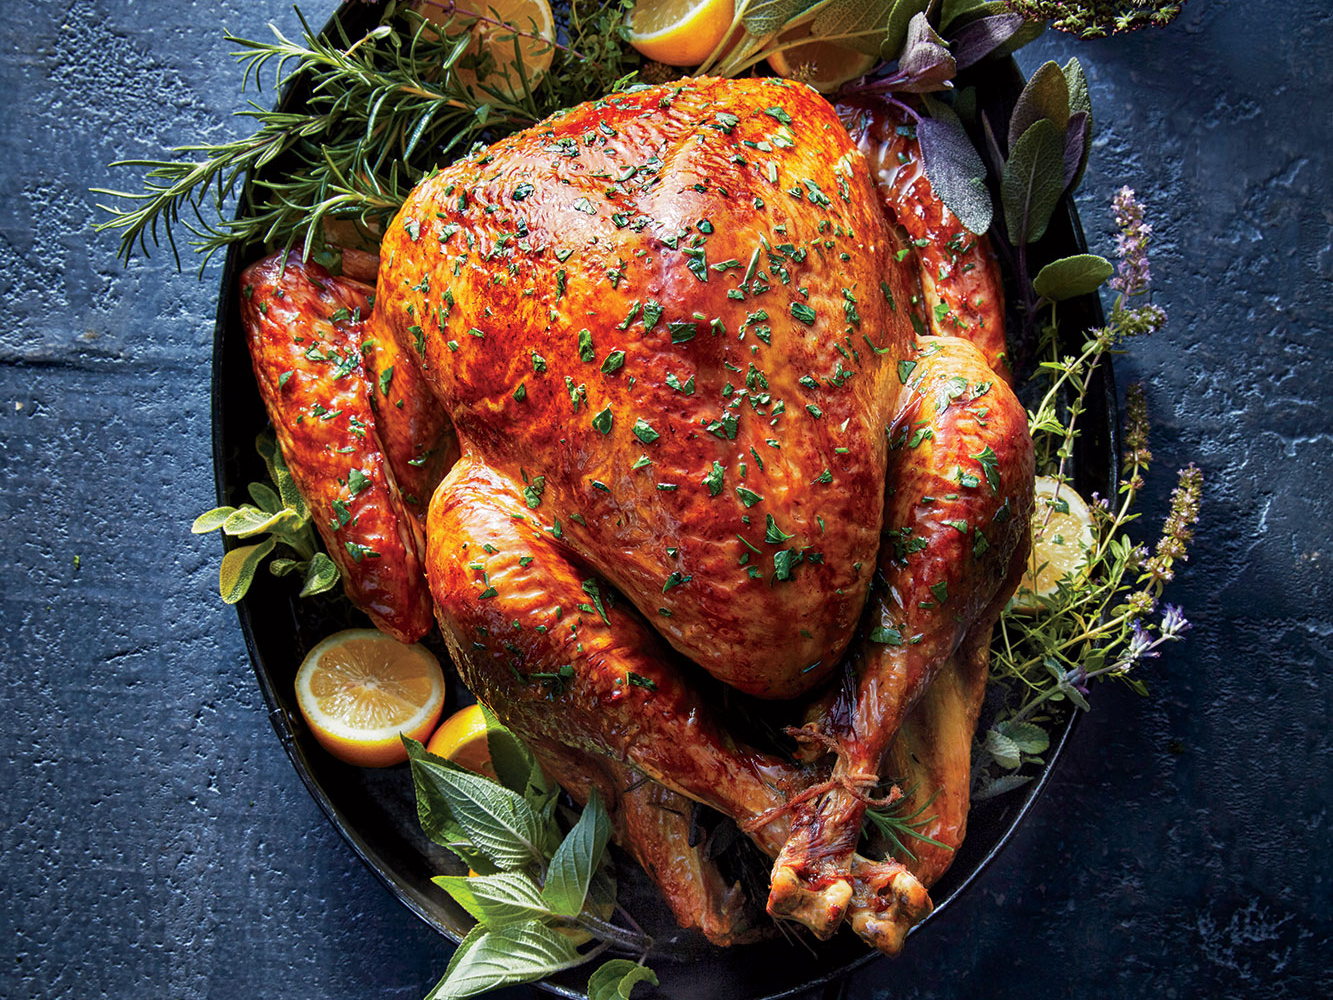 Why You Should Buy Your Turkey Right Now